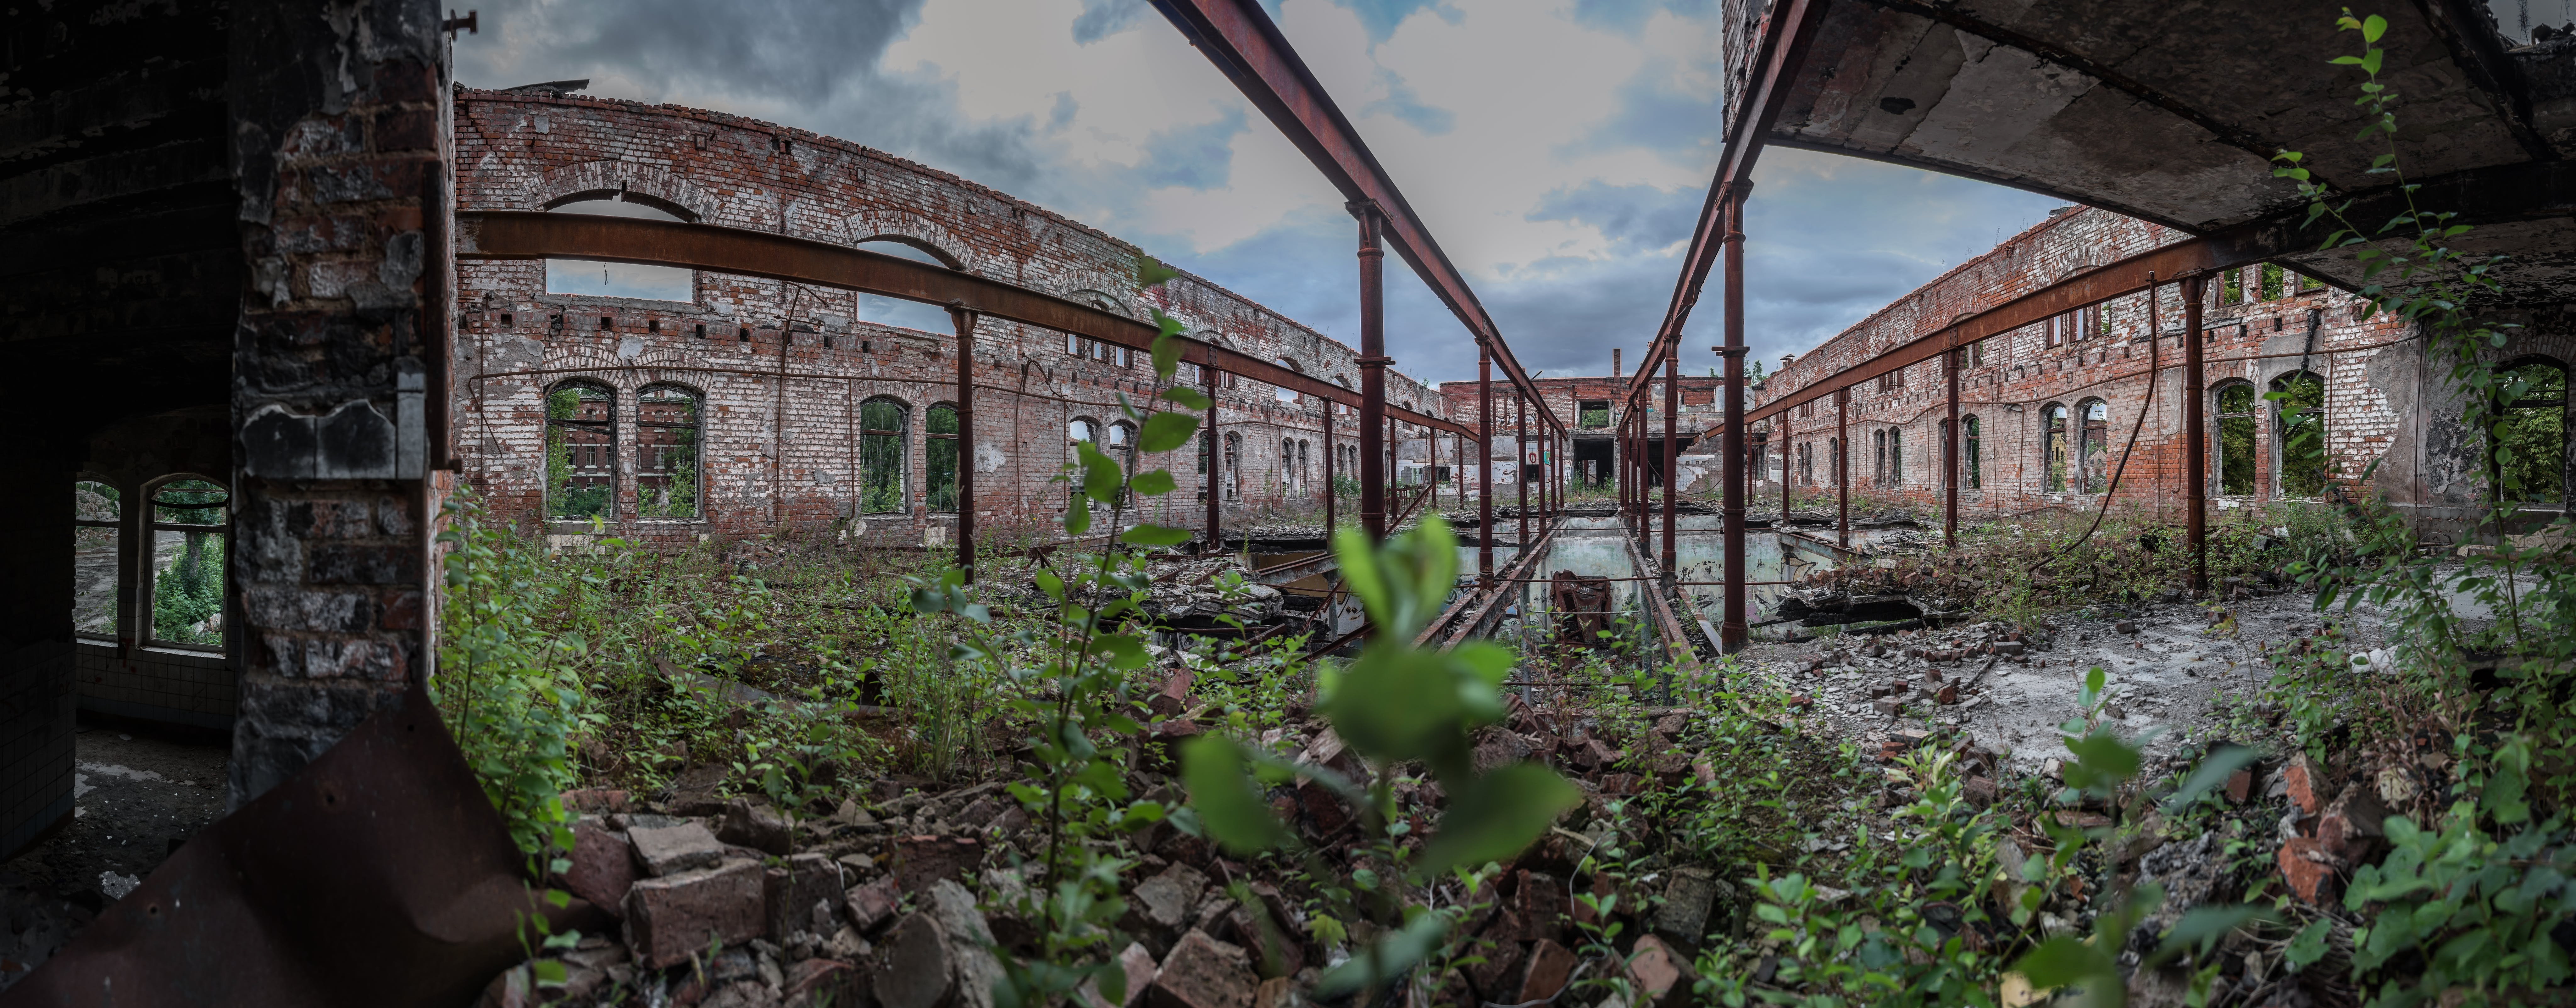 Free stock photo of by Wendelin Jacober, leipzig, lostplace, urbex